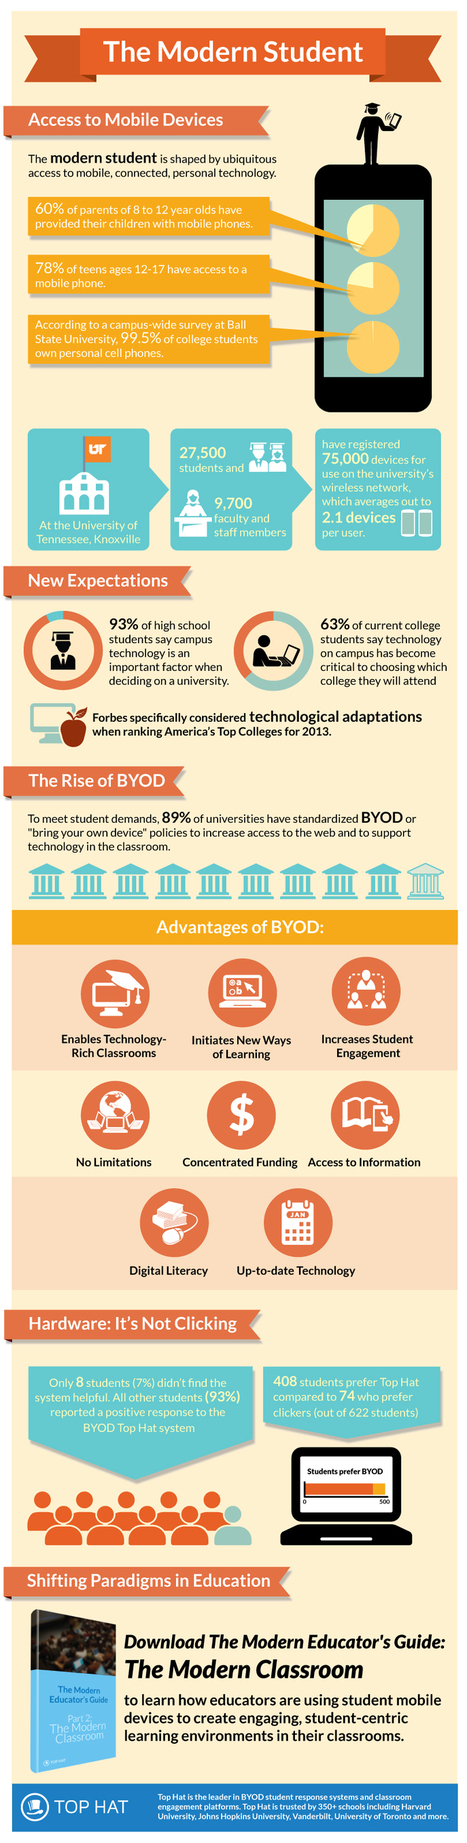 The Modern Student Infographic | Technology for school | Scoop.it